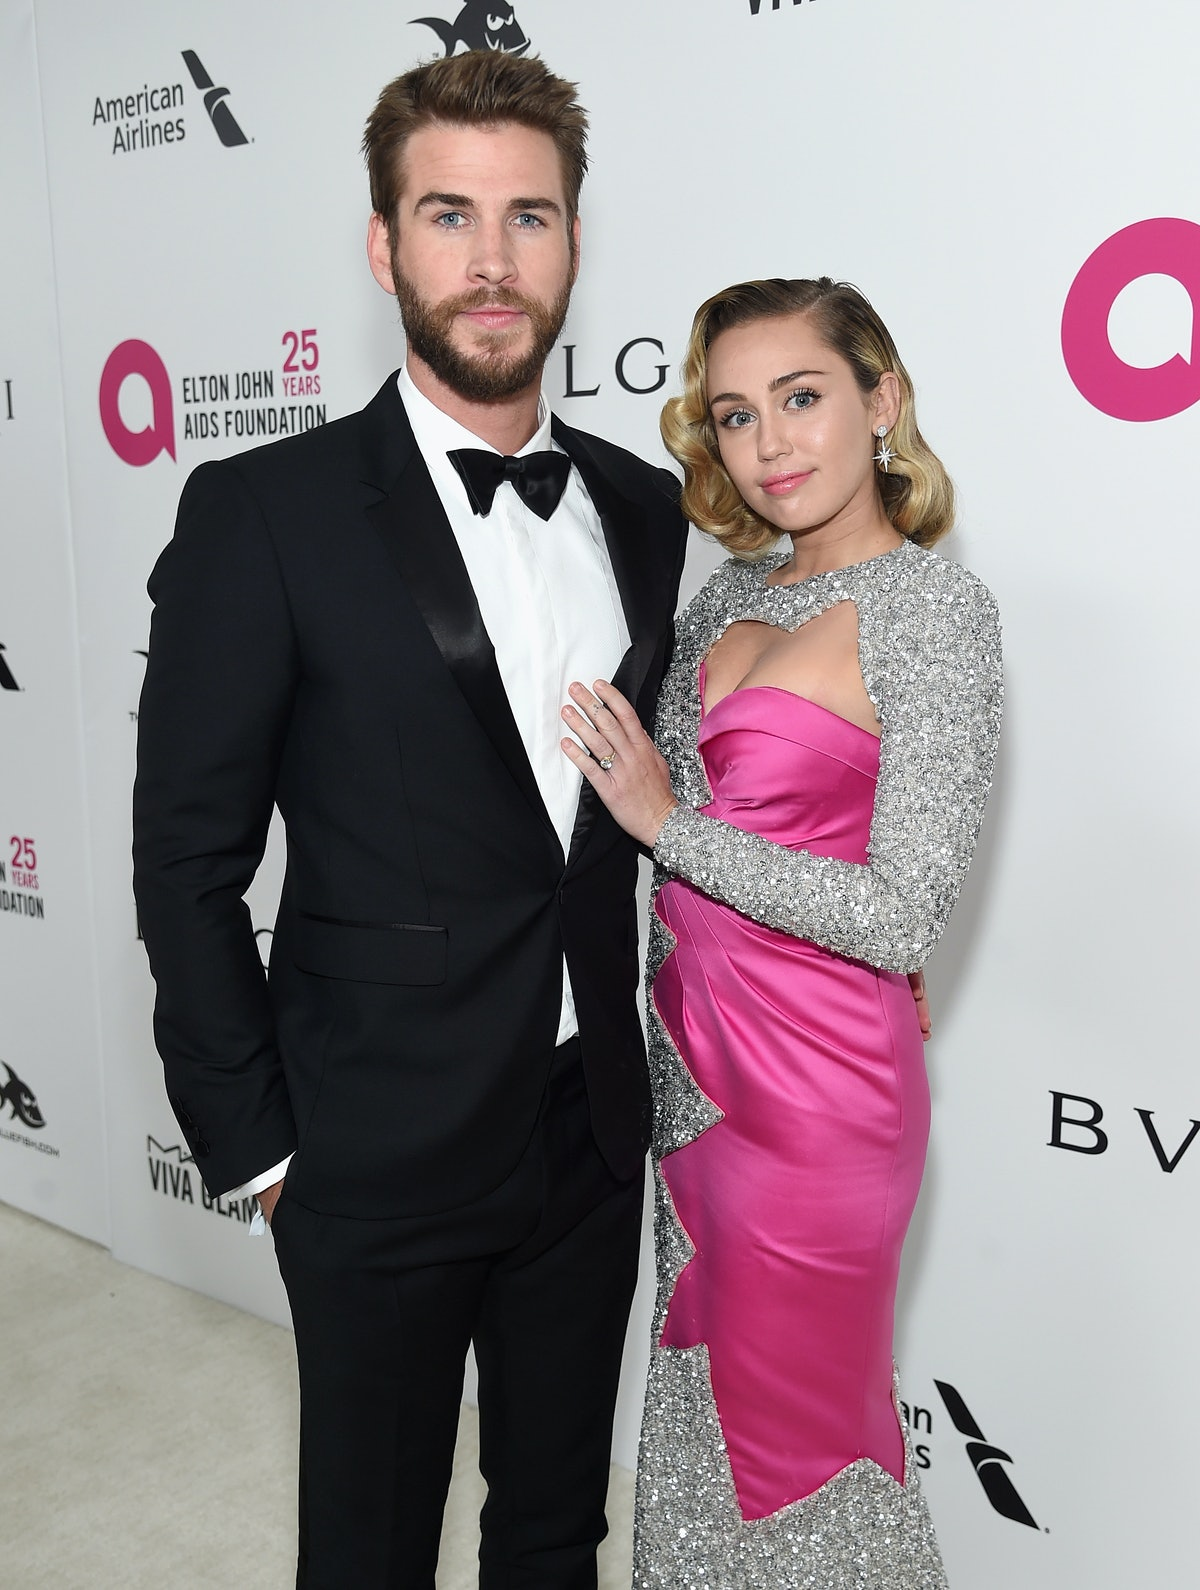 Miley Cyrus Shared New Wedding Photos With Liam Hemsworth Just In Time For Valentine's Day — PHOTOS